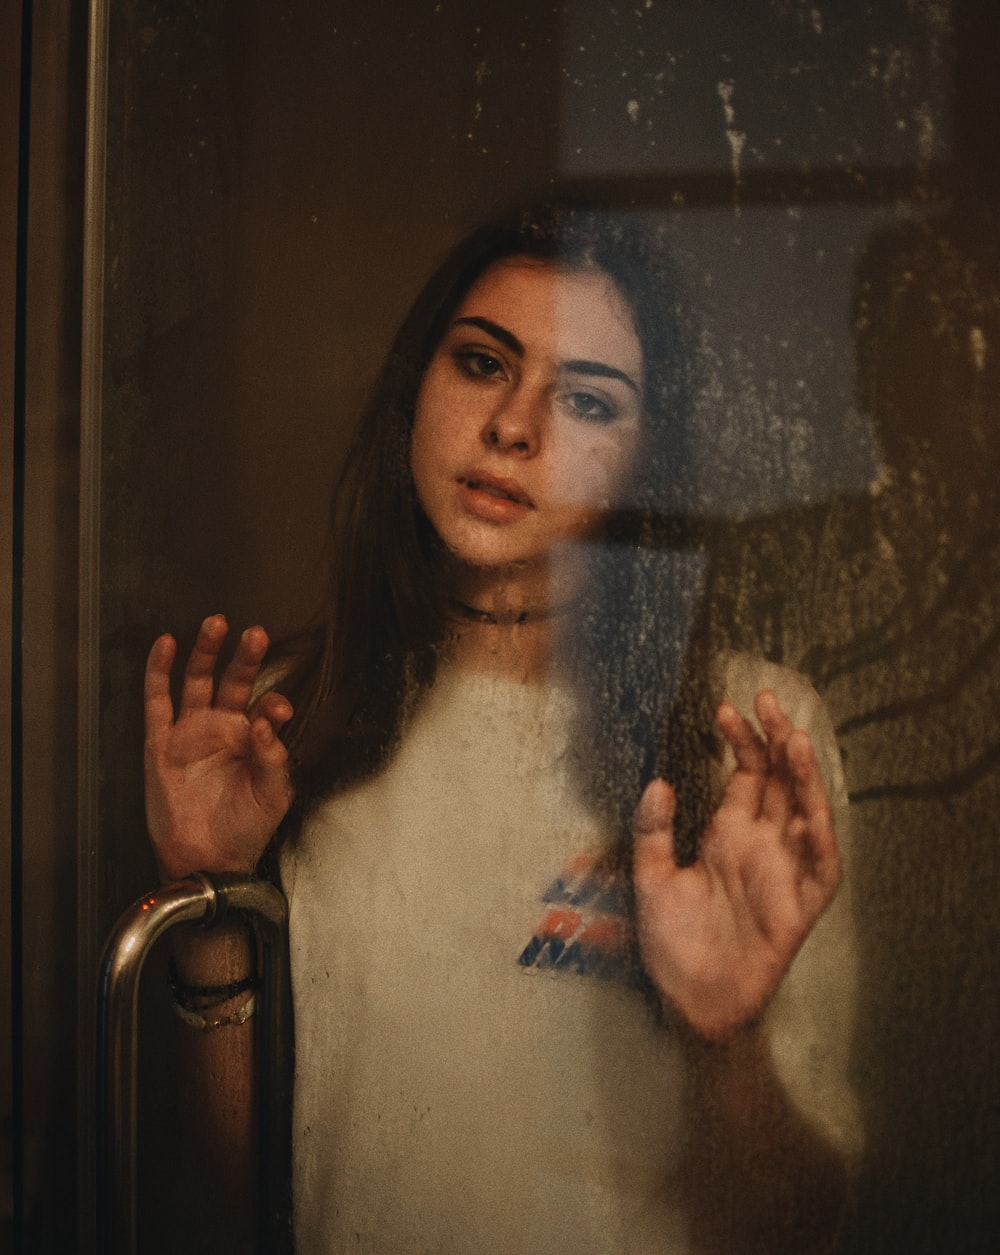 woman leaning on glass door